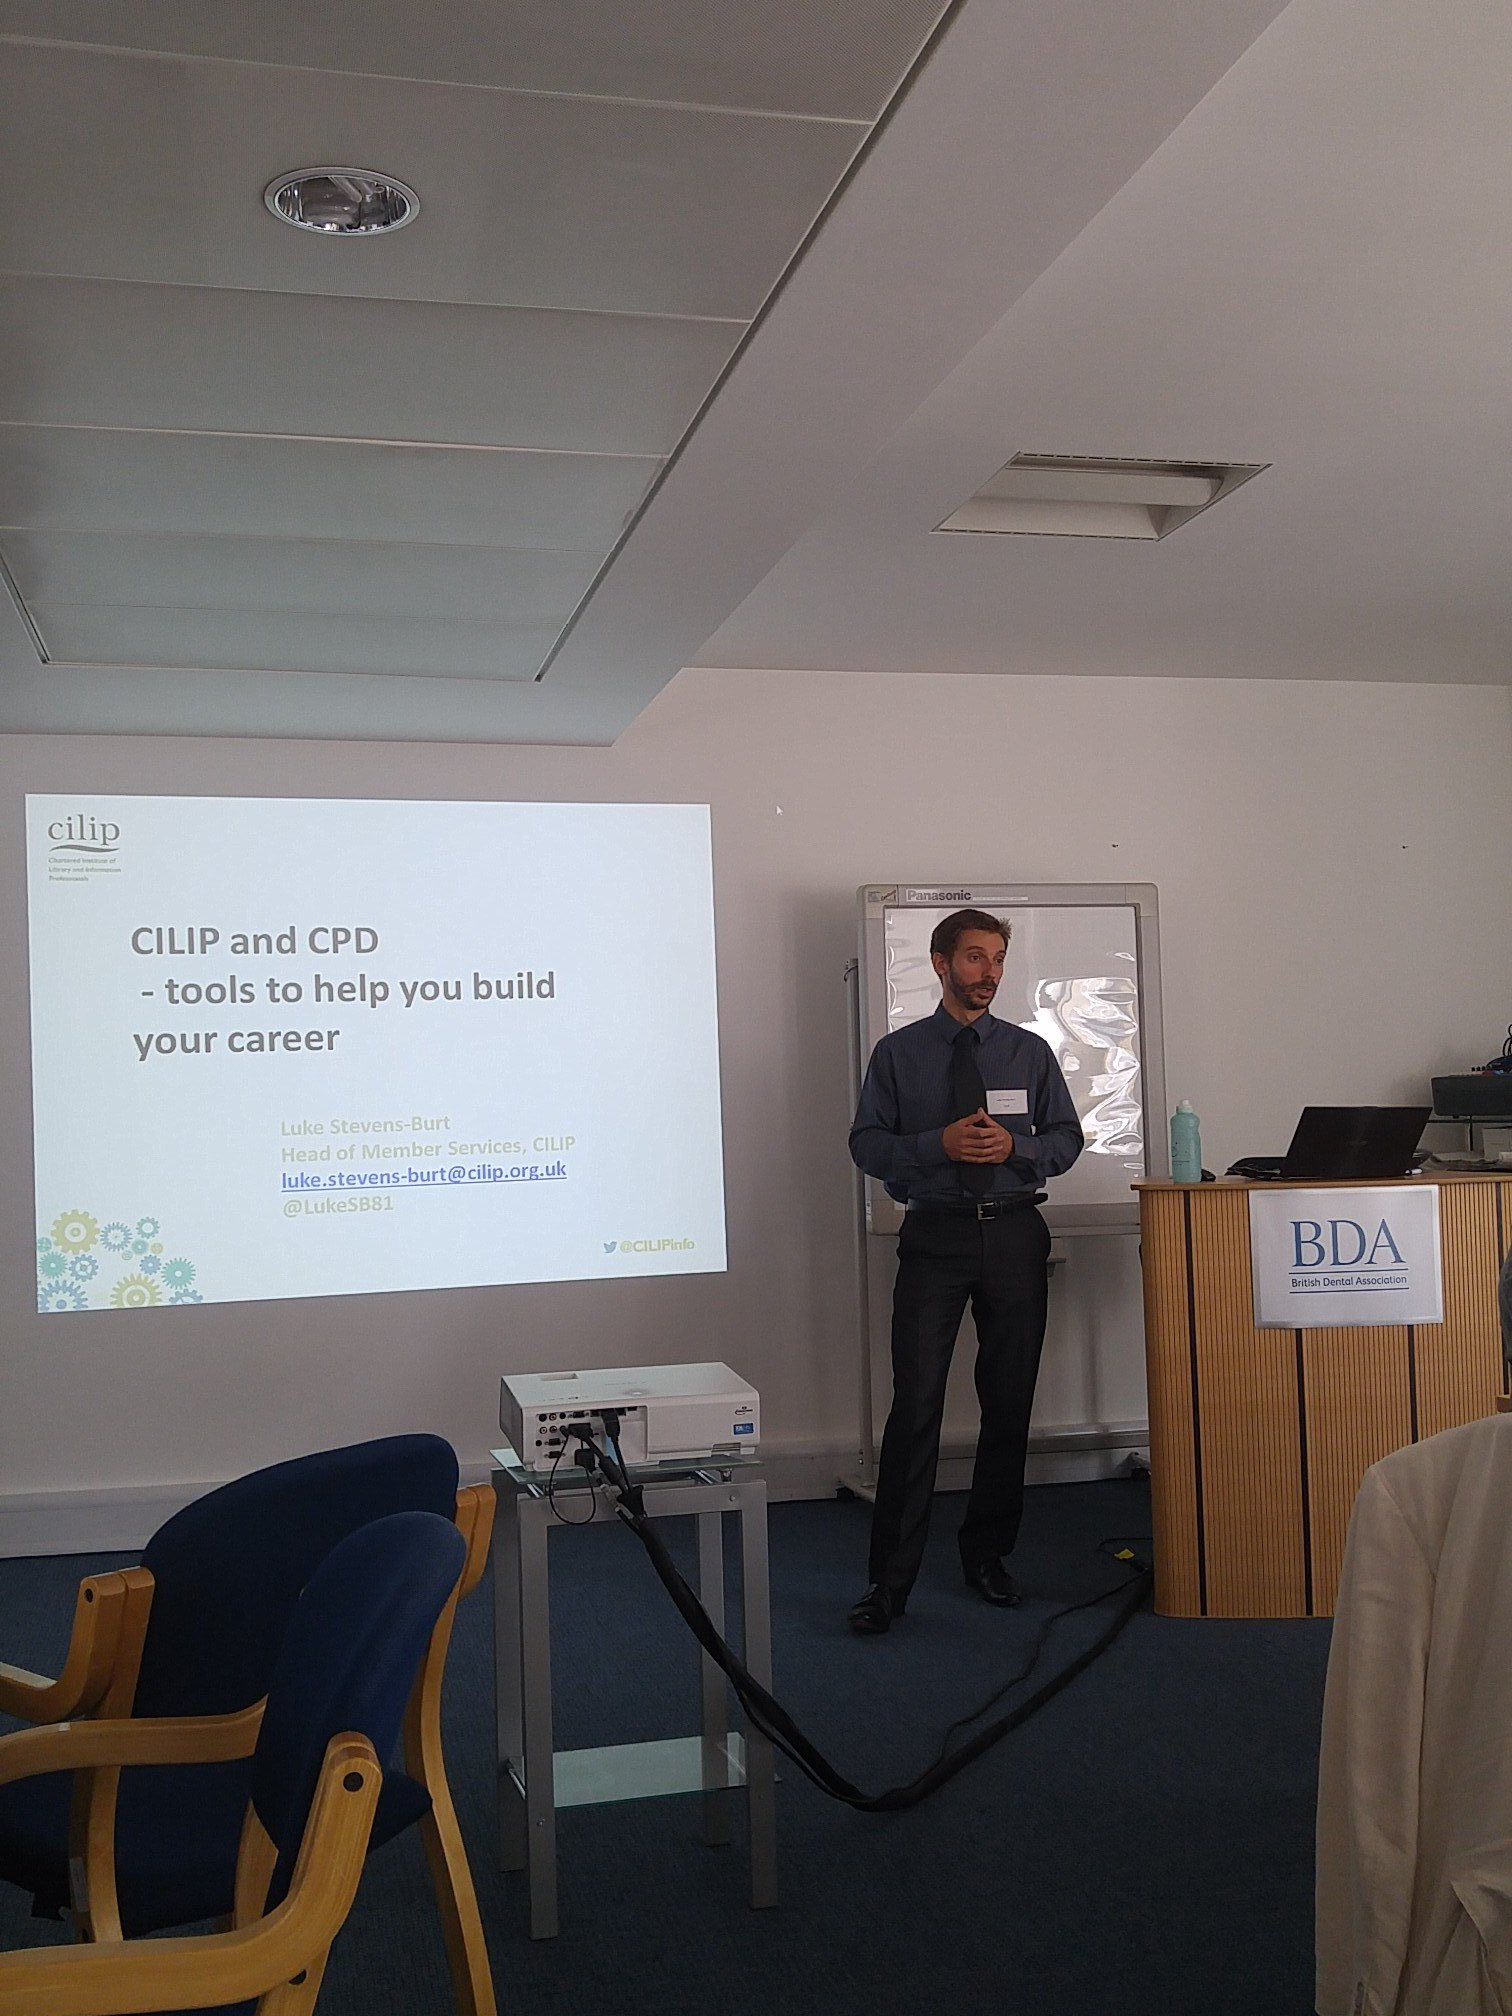 First up is @LukeSB81 from @CILIPinfo on the changing professional landscape #netikx81 https://t.co/JIYAuHXEEo